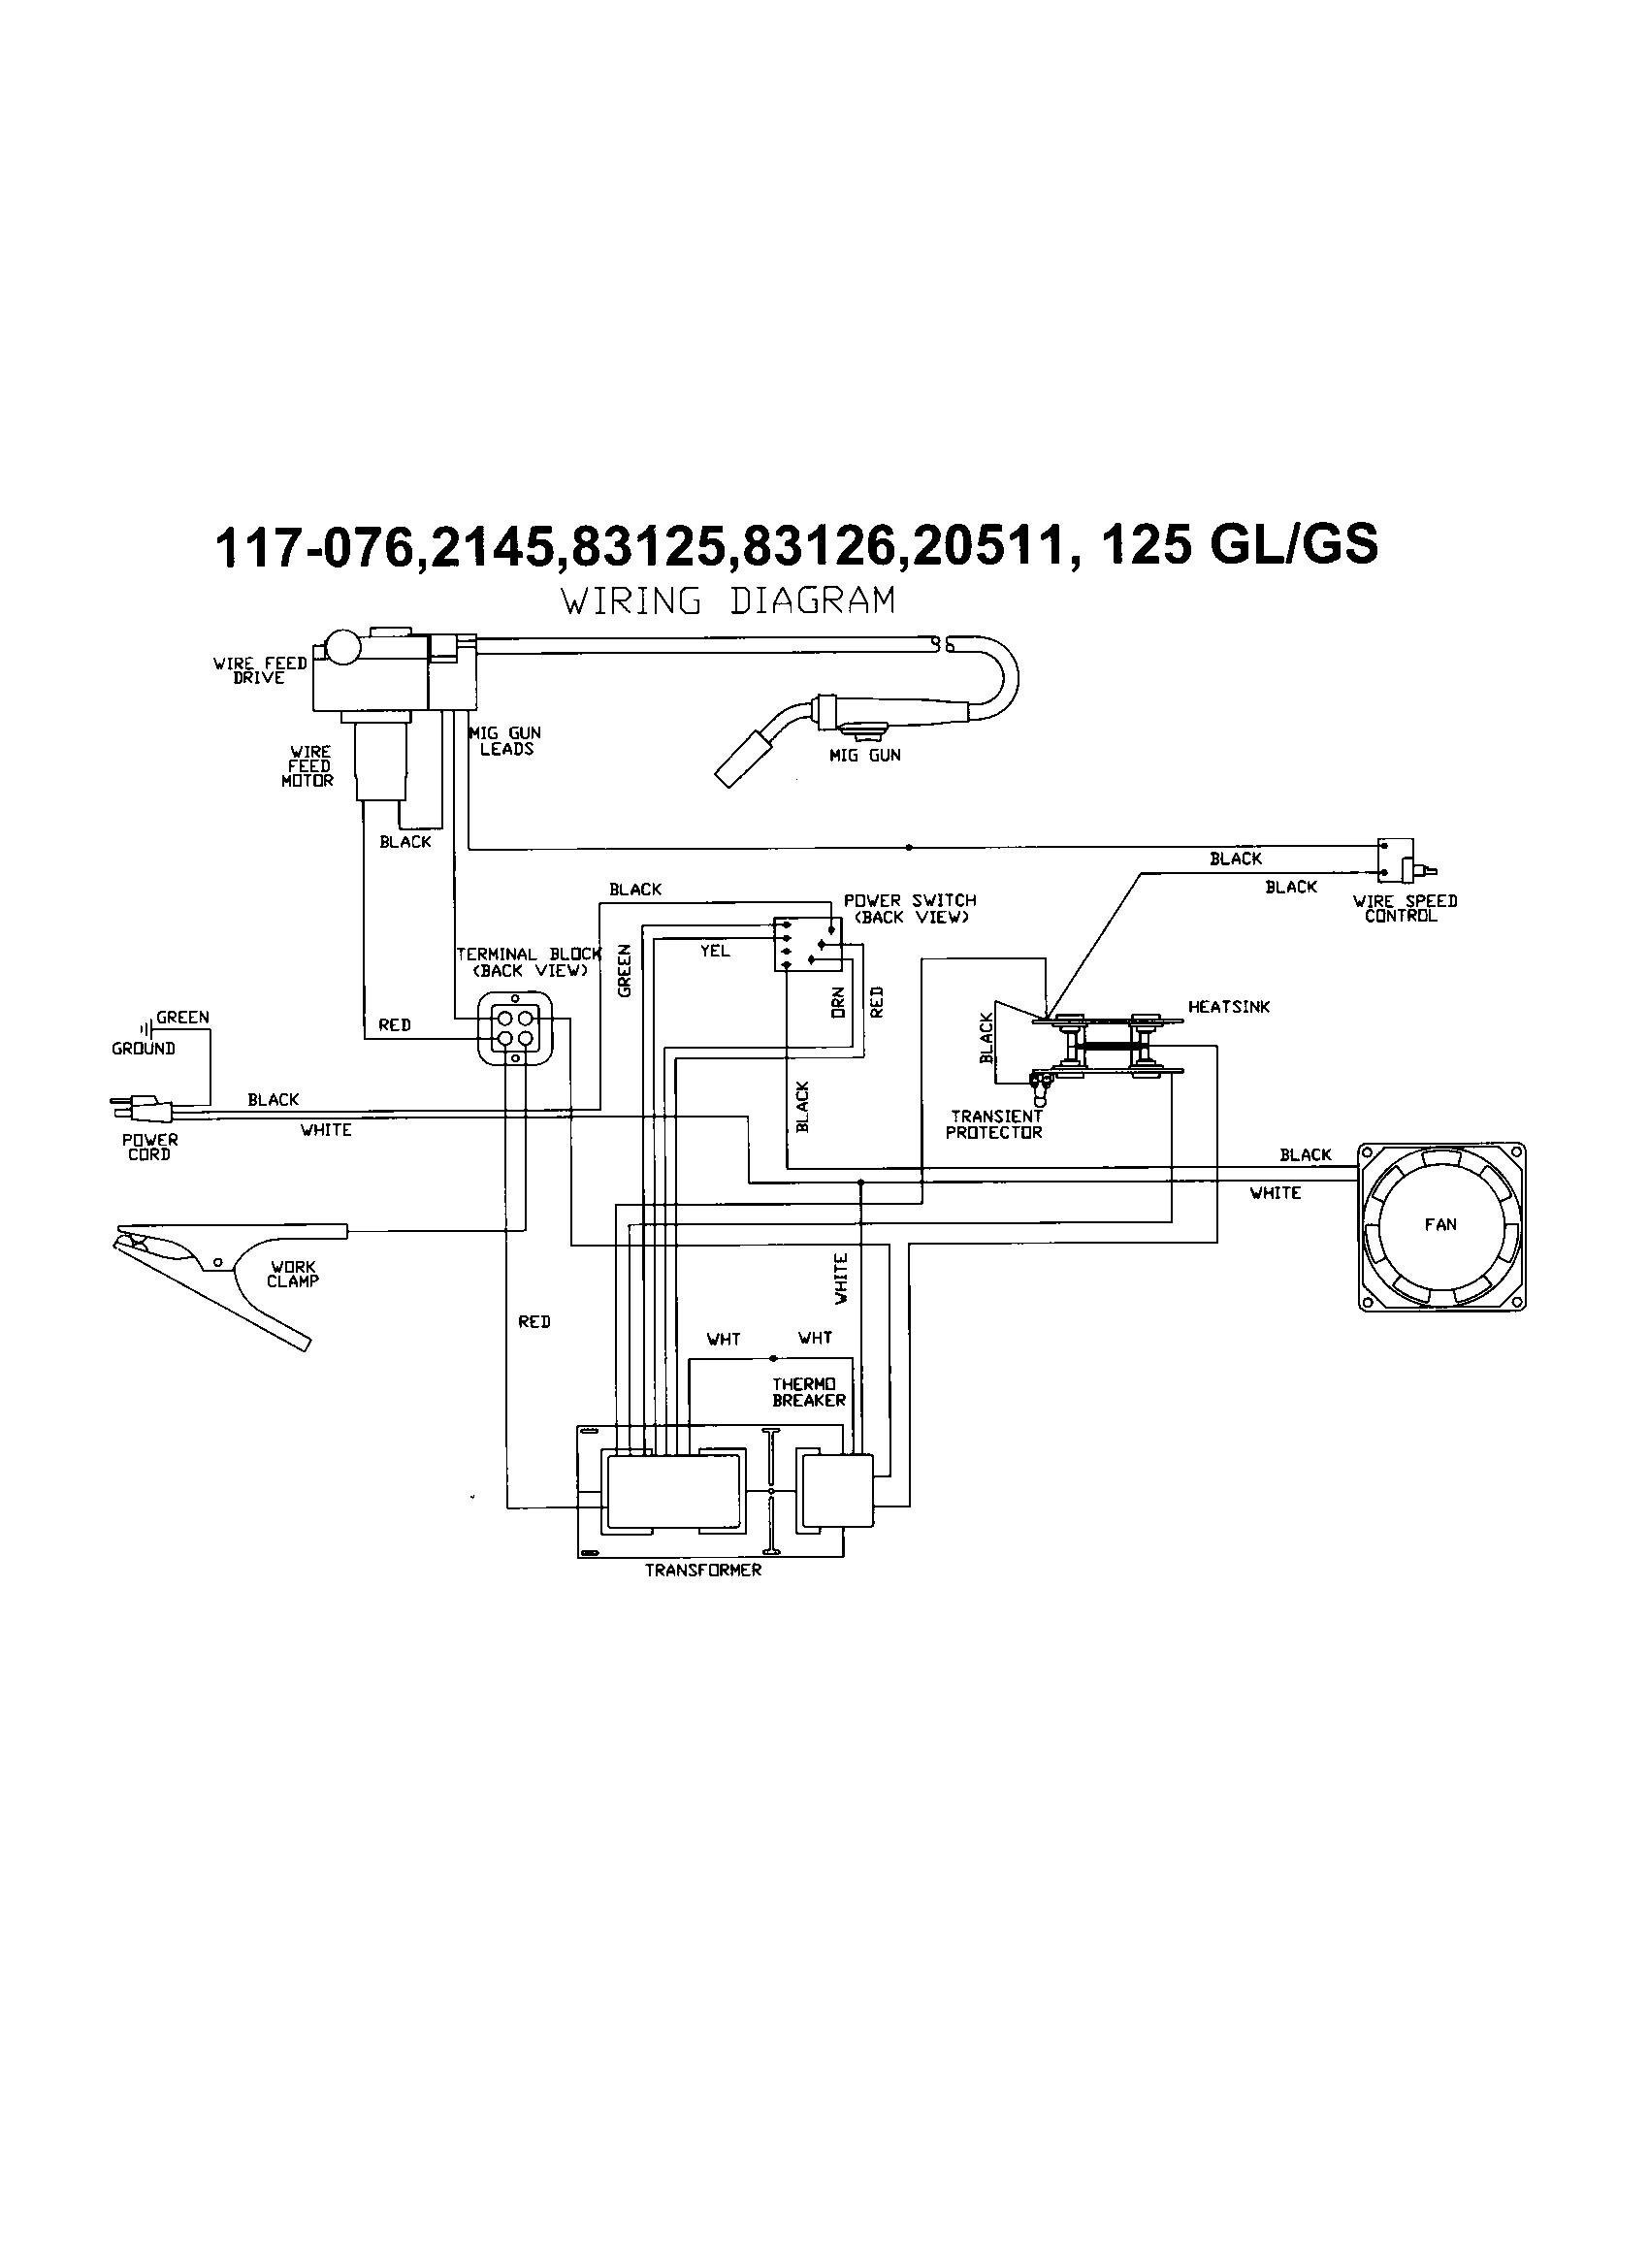 lincoln 225 arc welder wiring diagram Collection-Alternator Welder Wiring Diagram Save Welder Generator Wiring Diagram New New Lincoln 225 Arc Welder 14-i